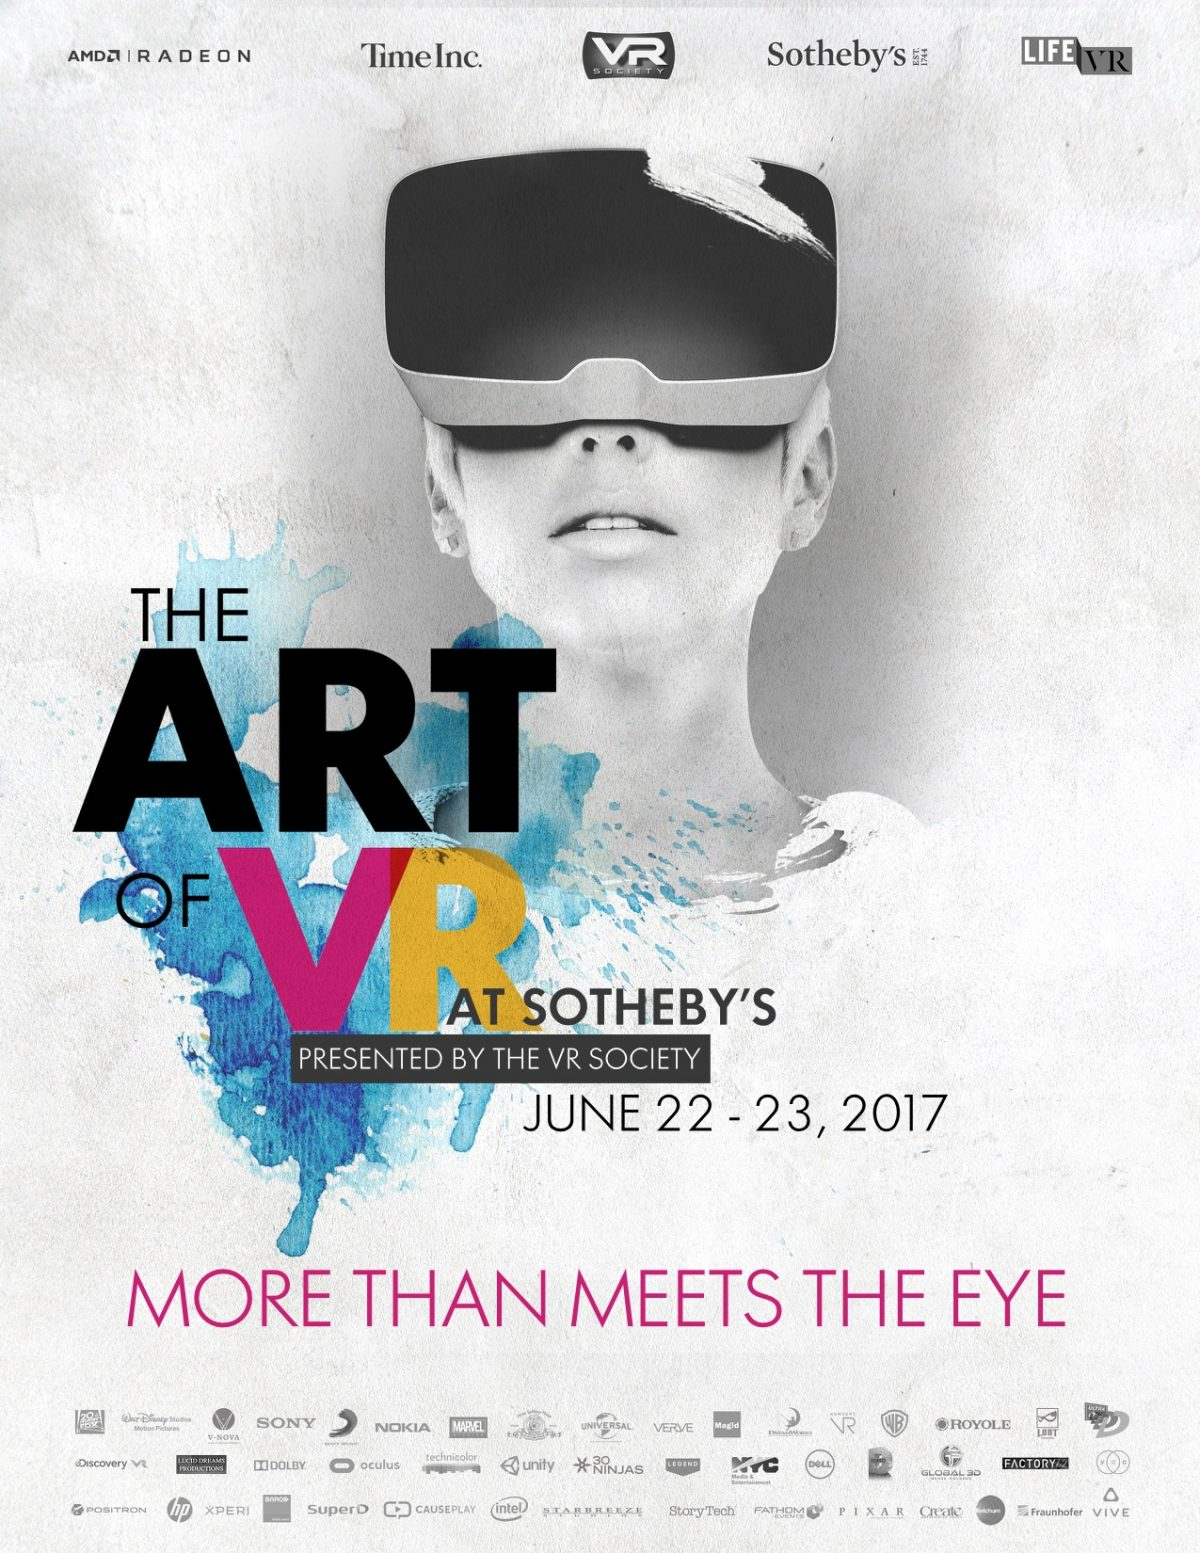 Event: The Art of VR at Sotheby's